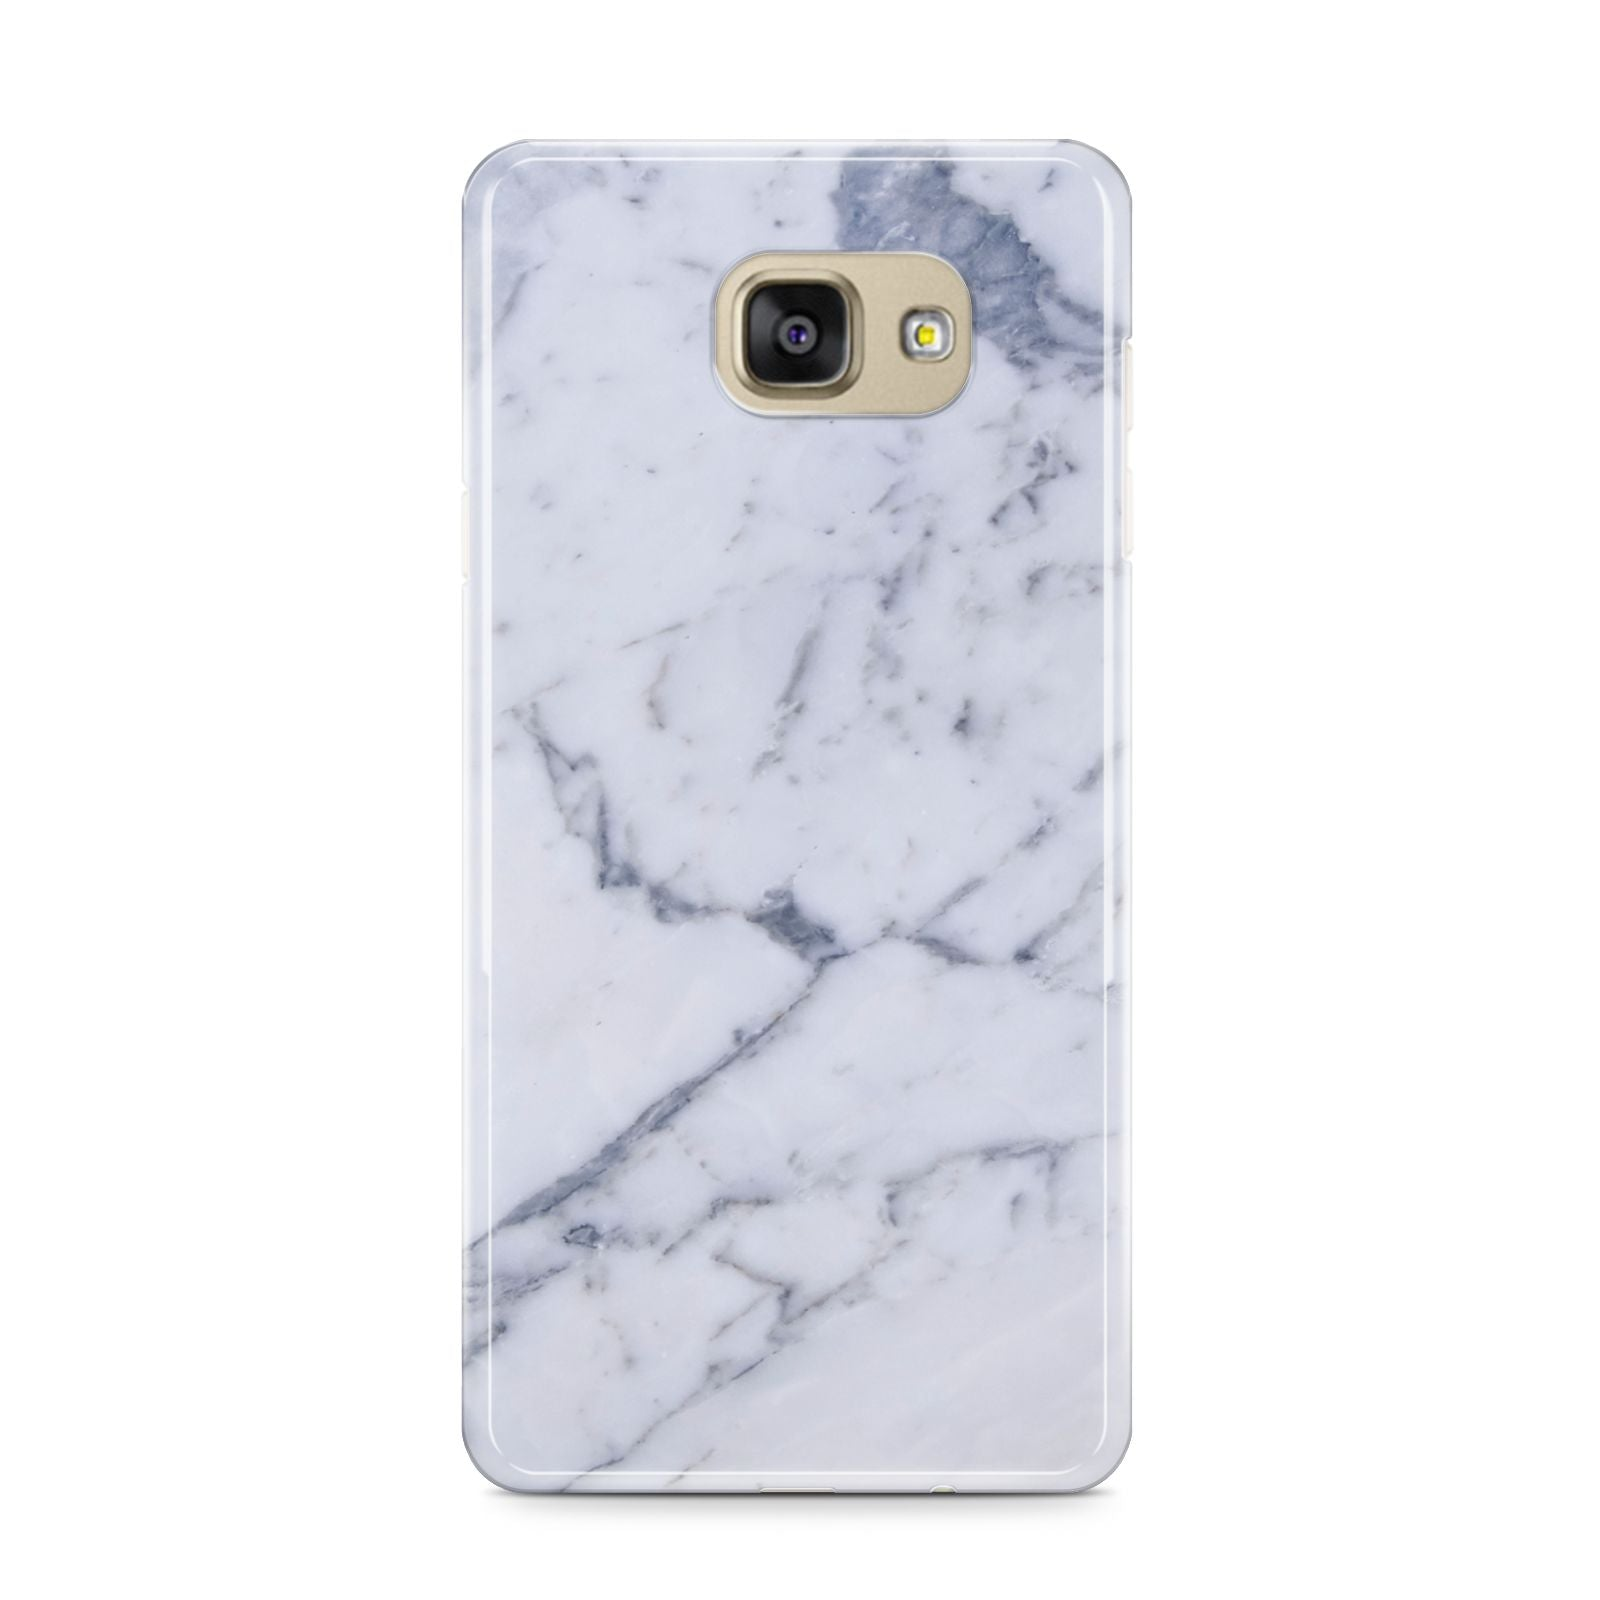 Faux Marble Grey White Samsung Galaxy A9 2016 Case on gold phone